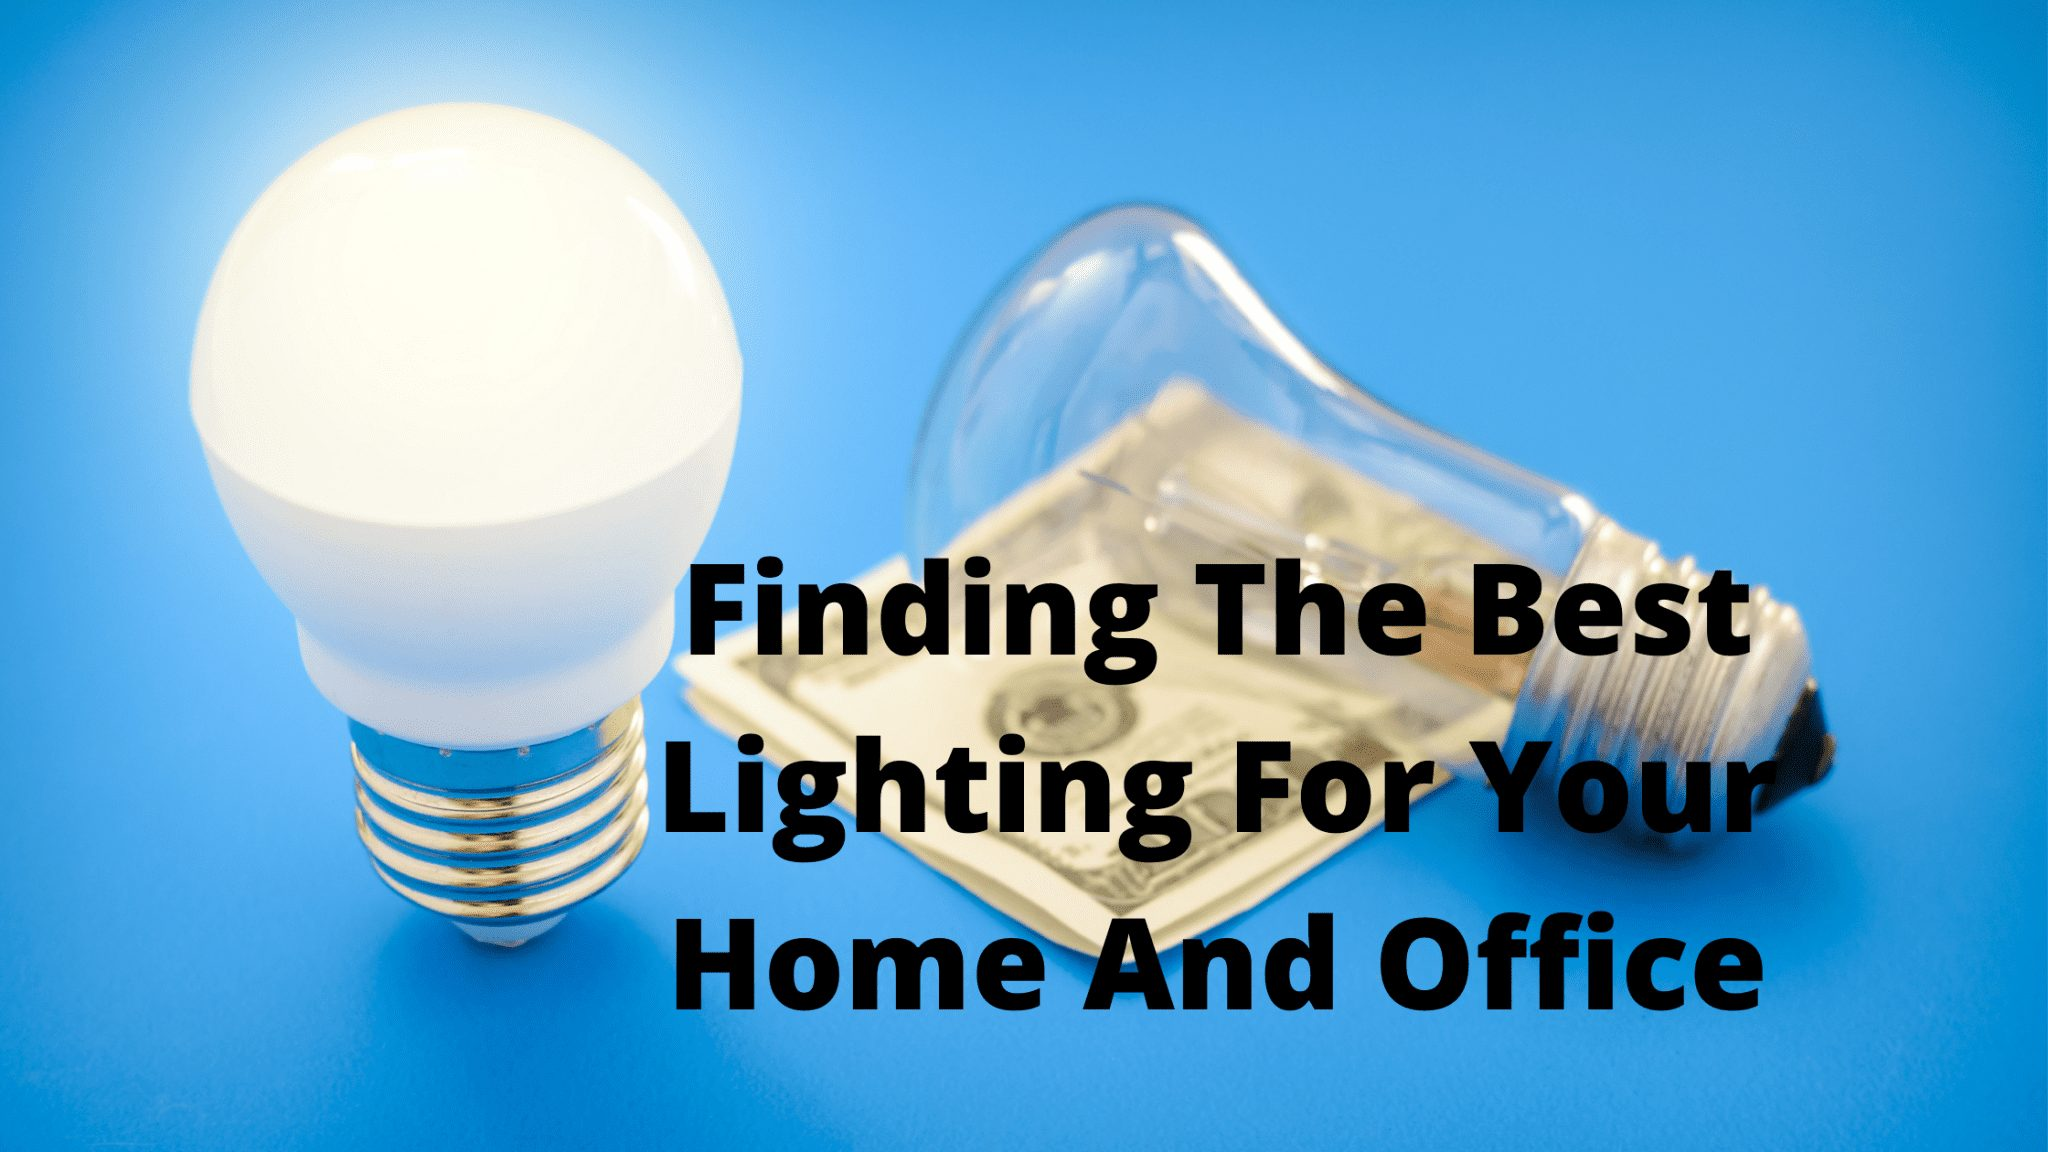 Finding The Best Lighting For Your Home And Office